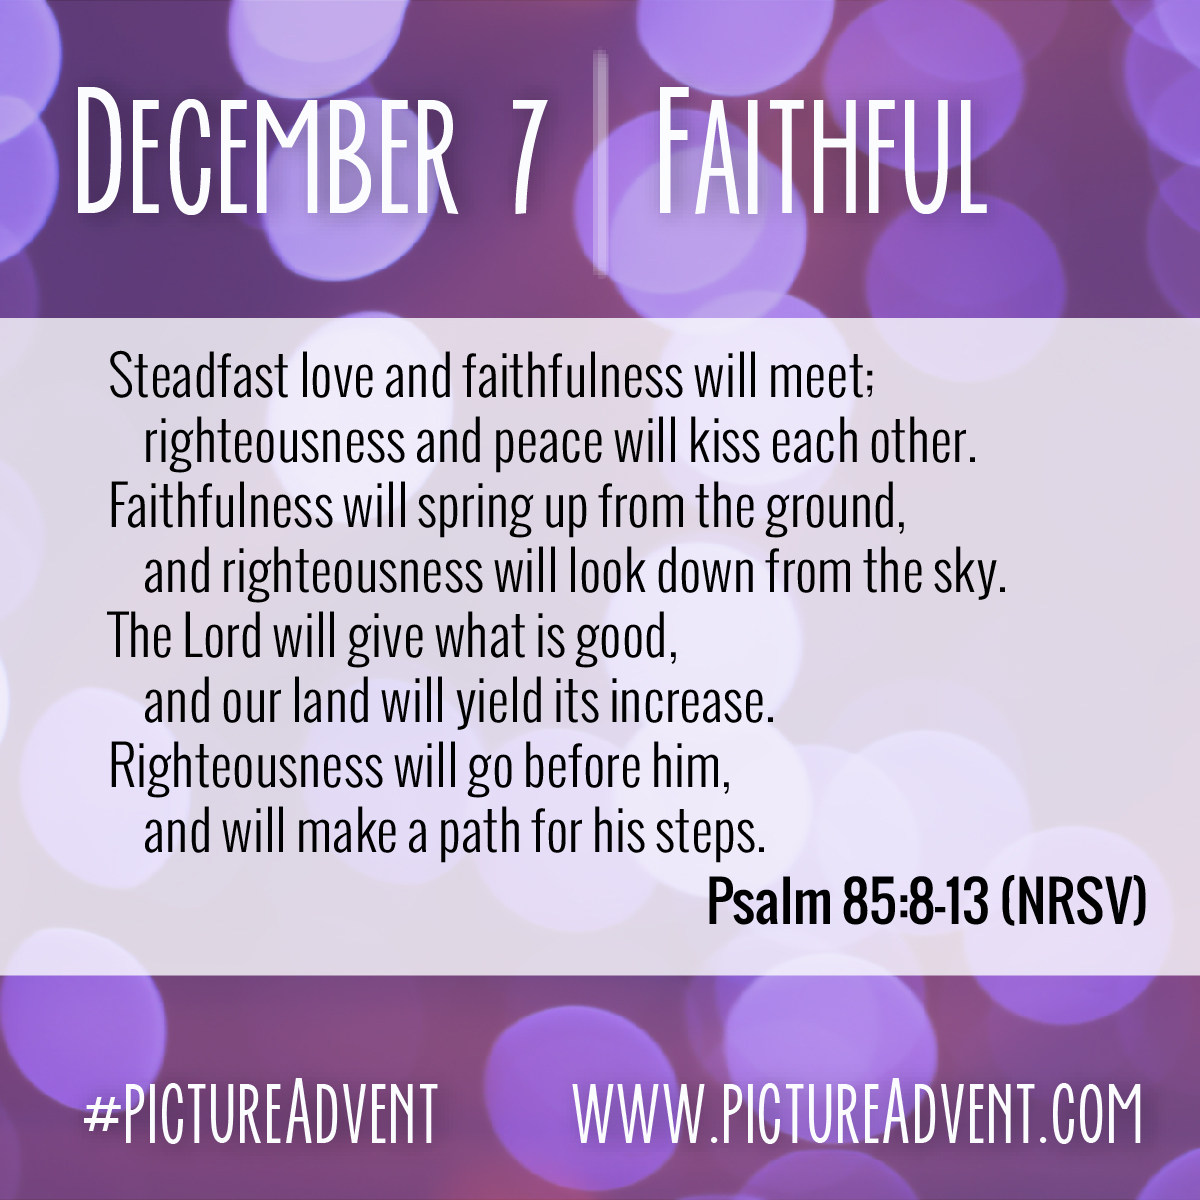 05 Dec 7 Faithful-01.jpg